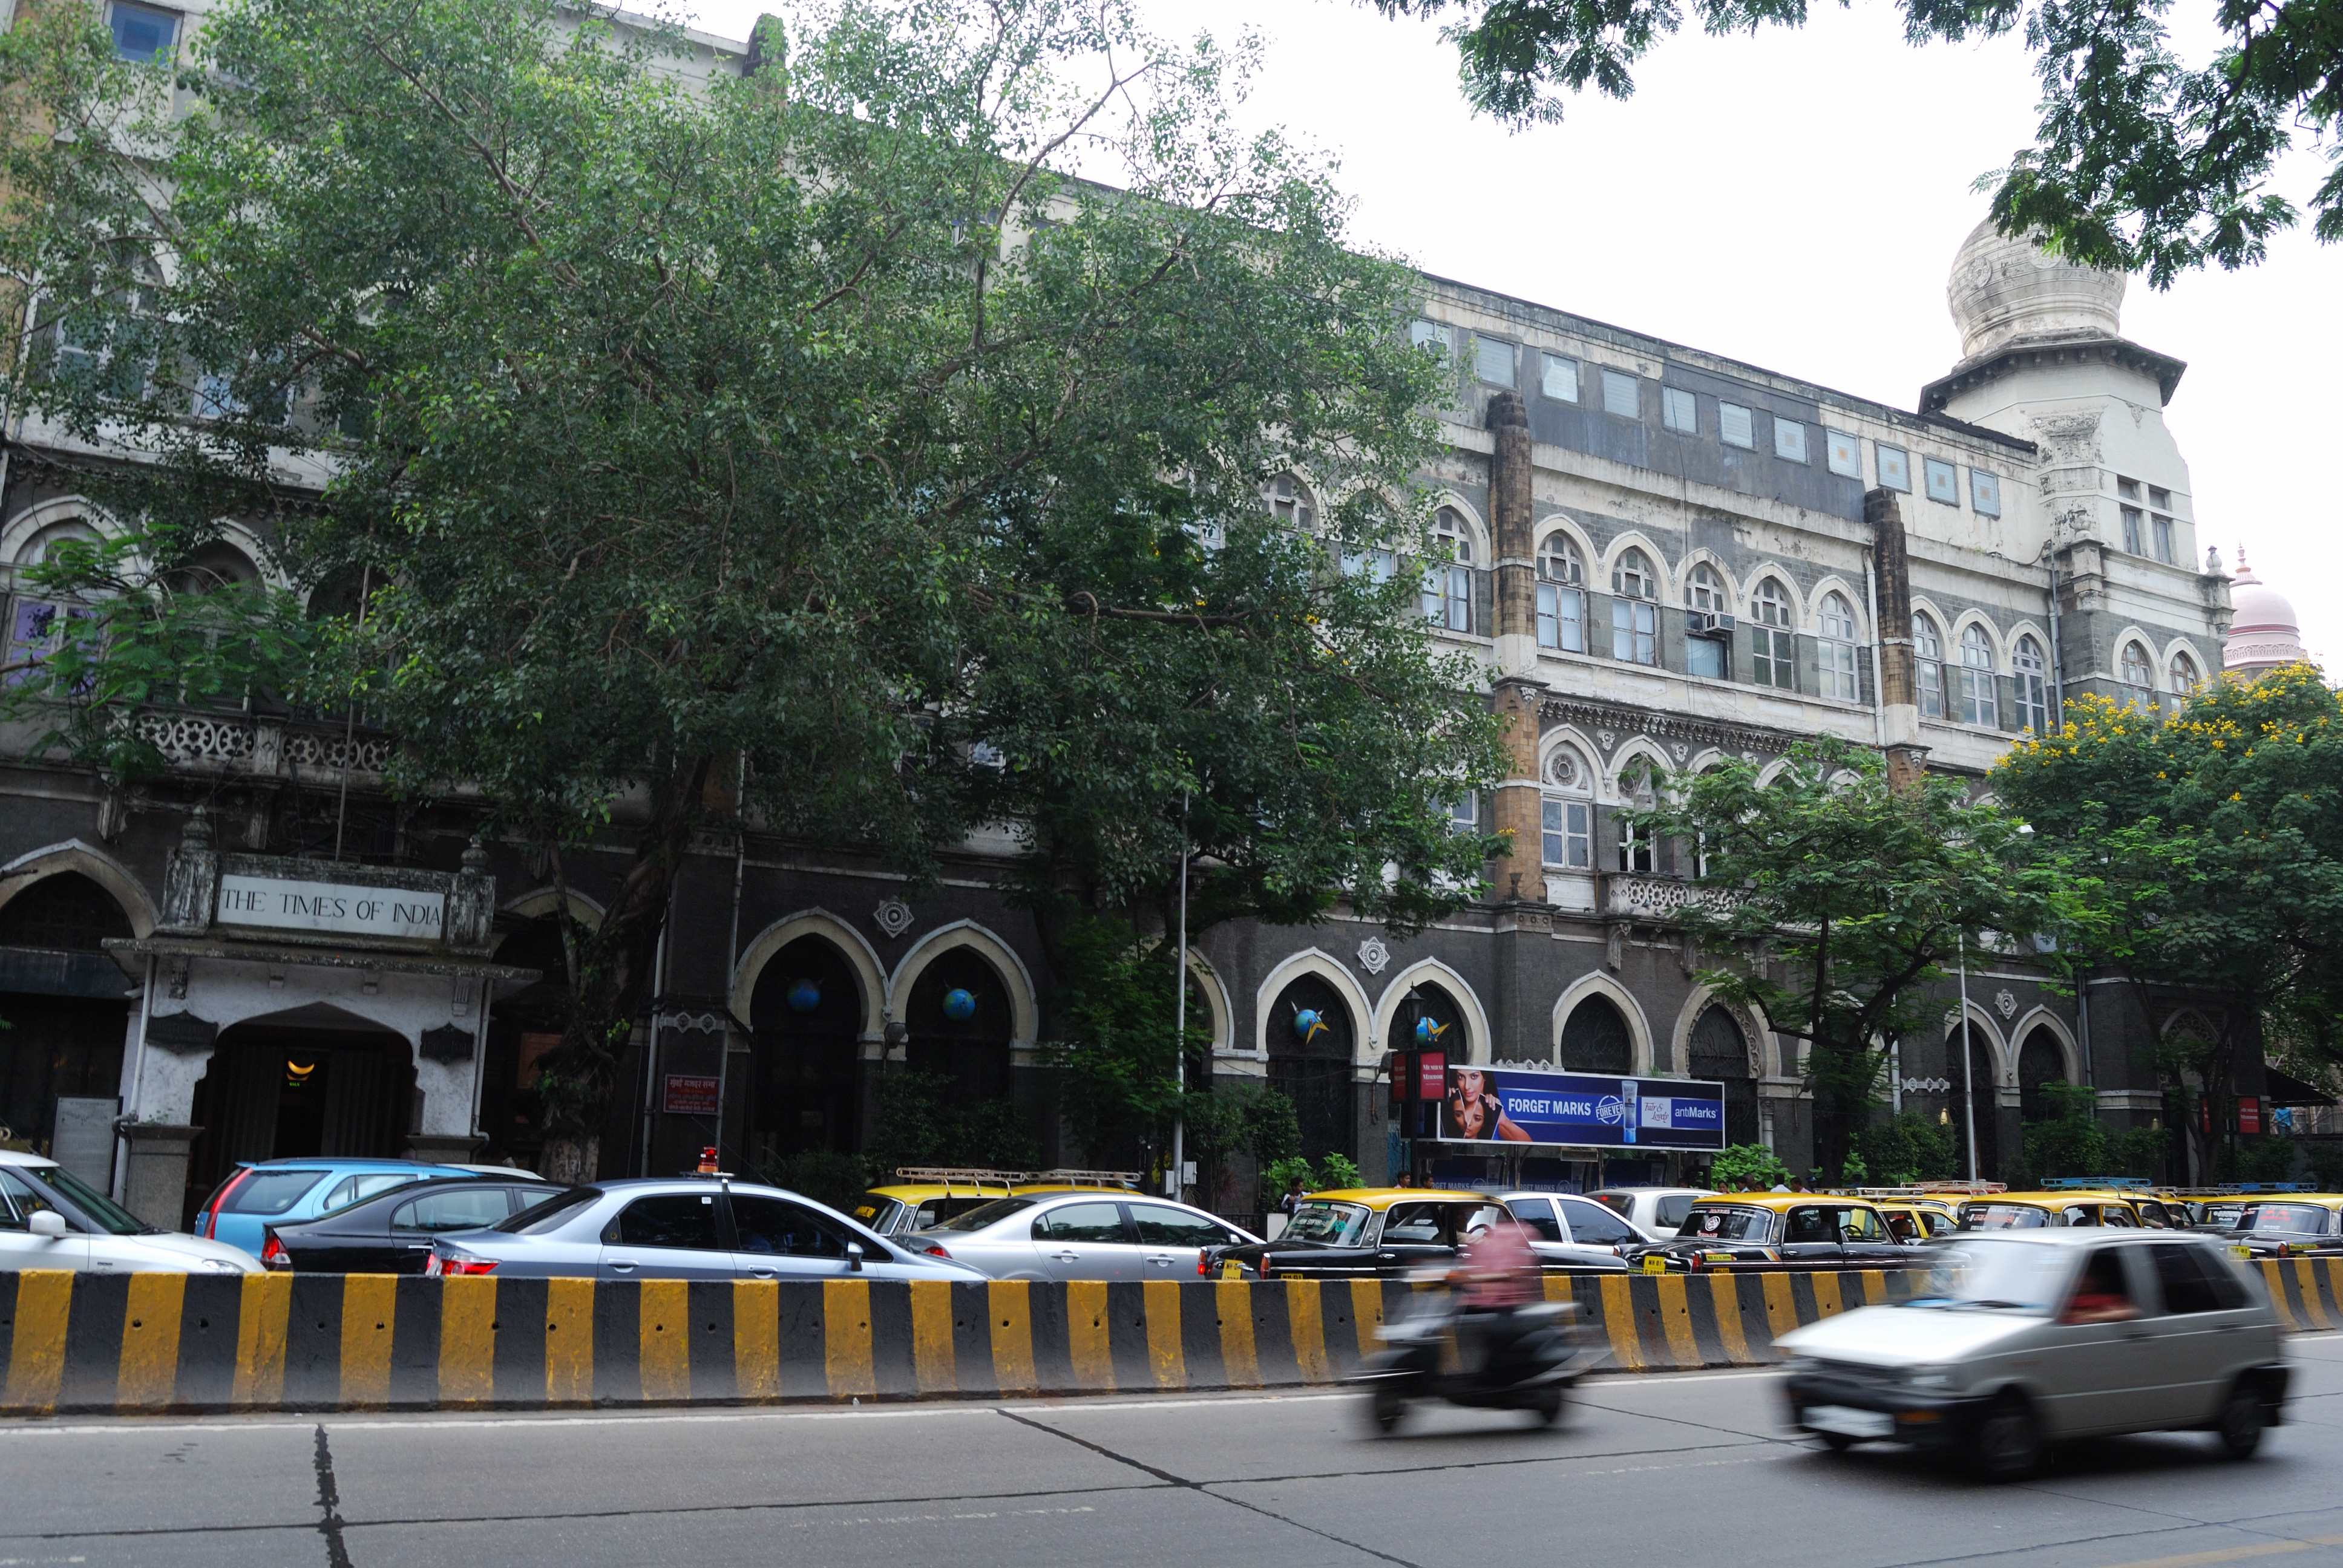 semester at sea: the times of india stands strong | the statesman